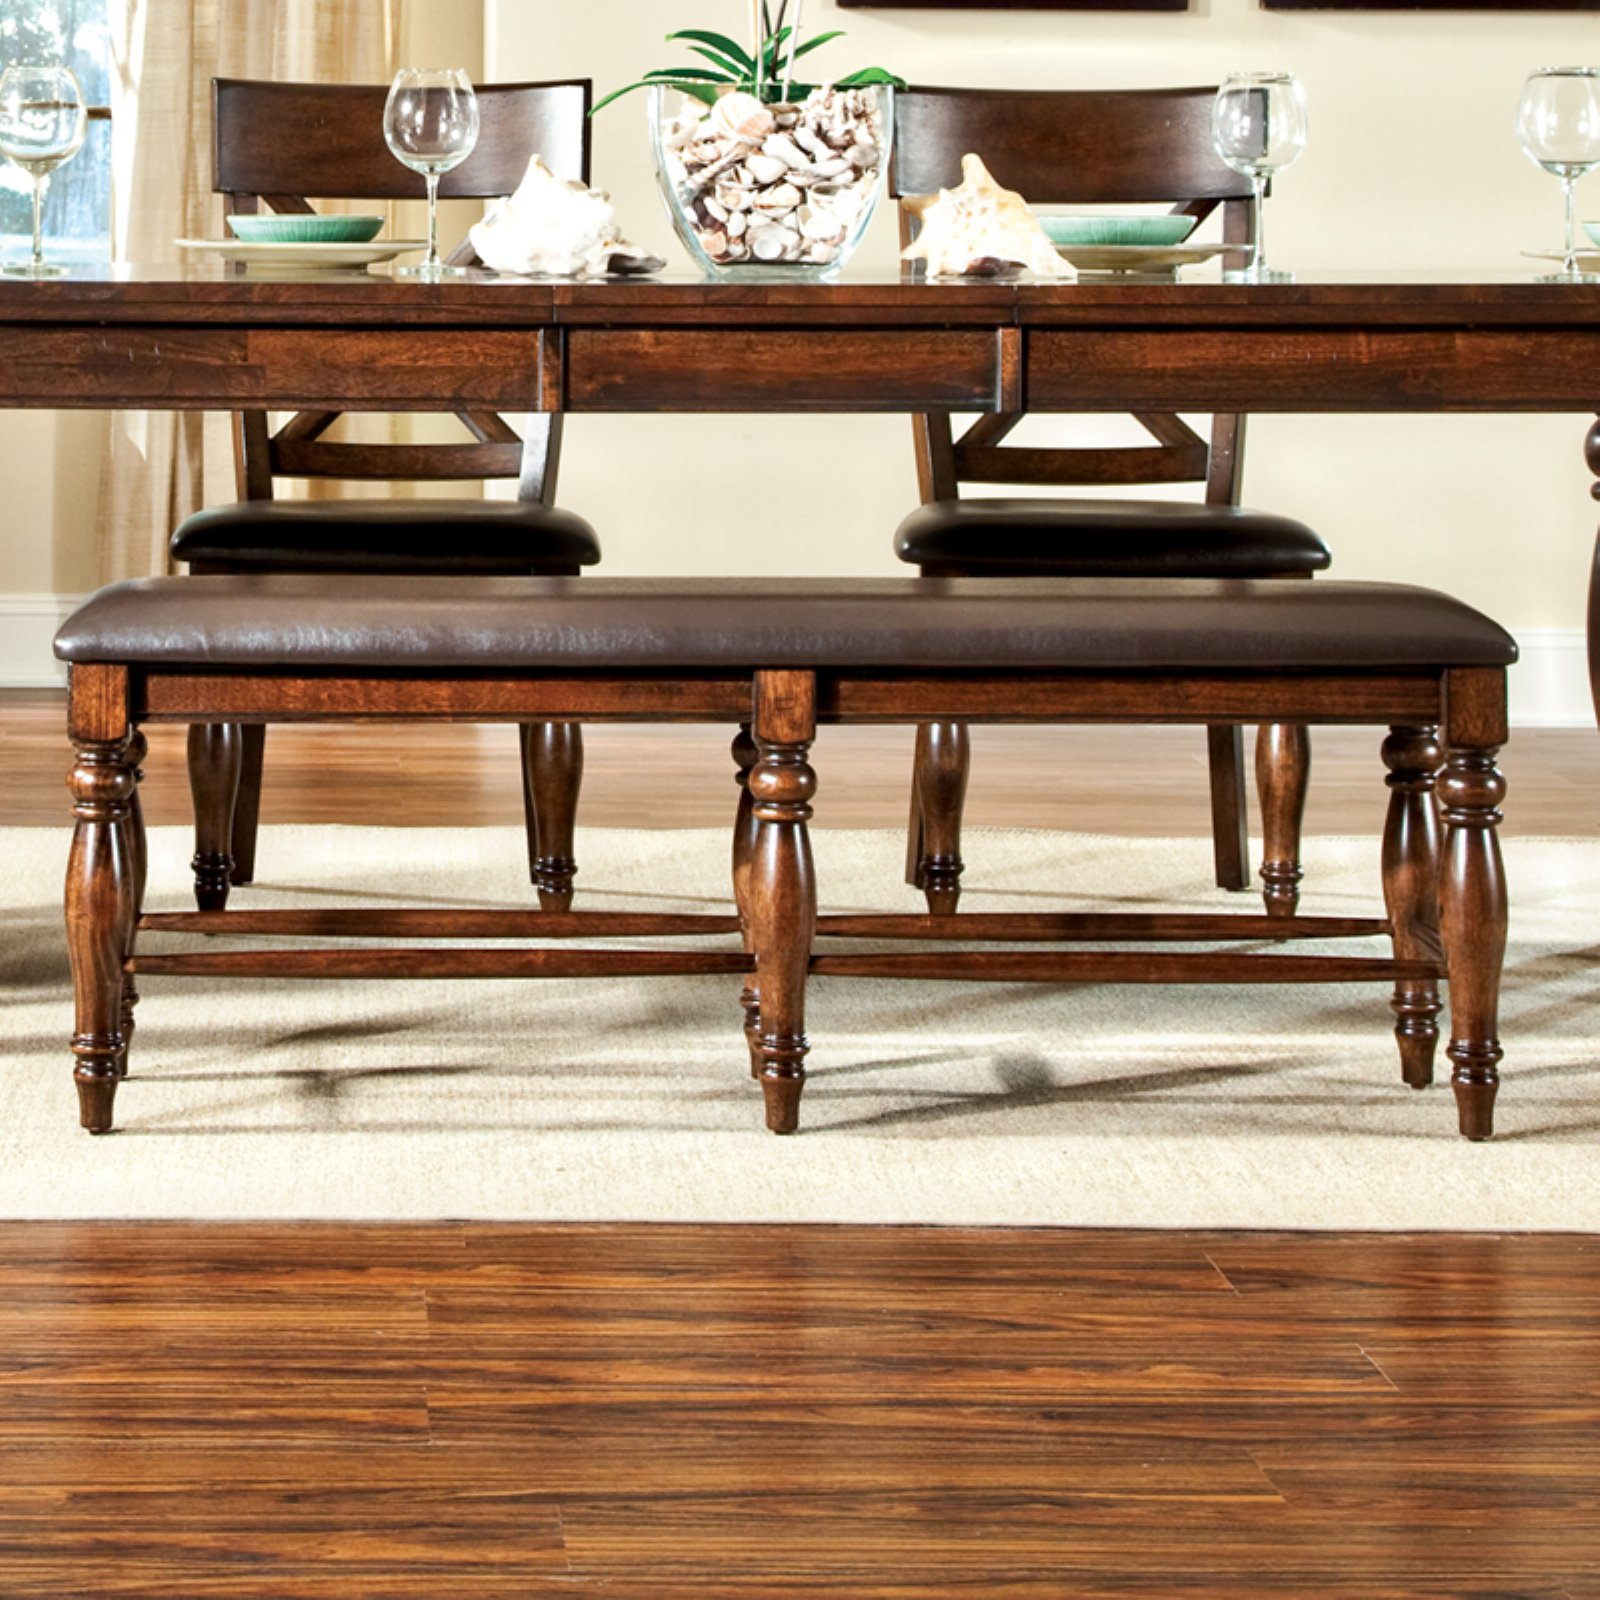 Imagio Home Kingston Backless Dining Bench